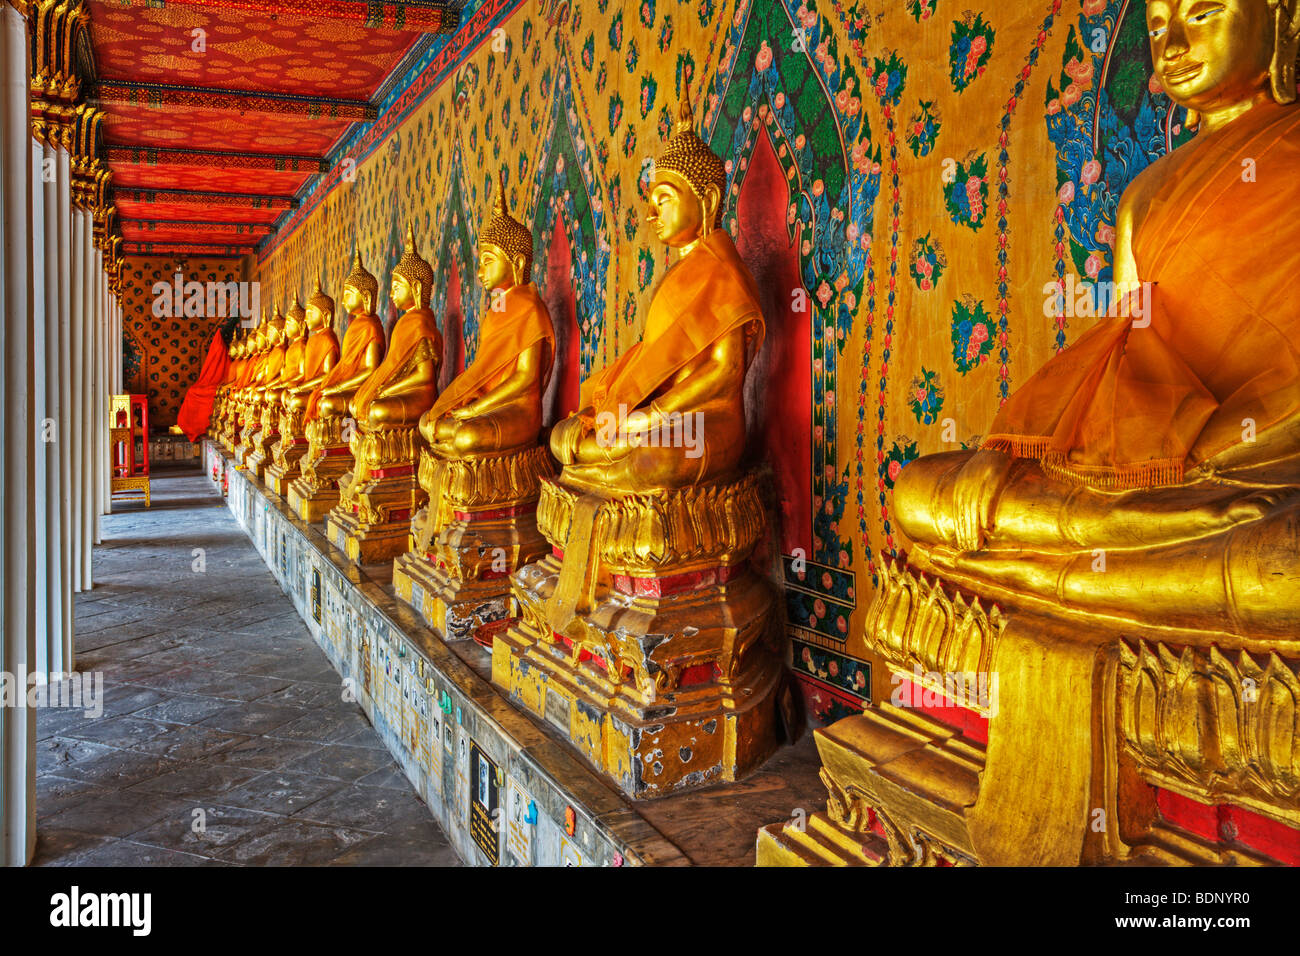 Buddhas located in the Gallery of the Bot at Wat Arun - Stock Image